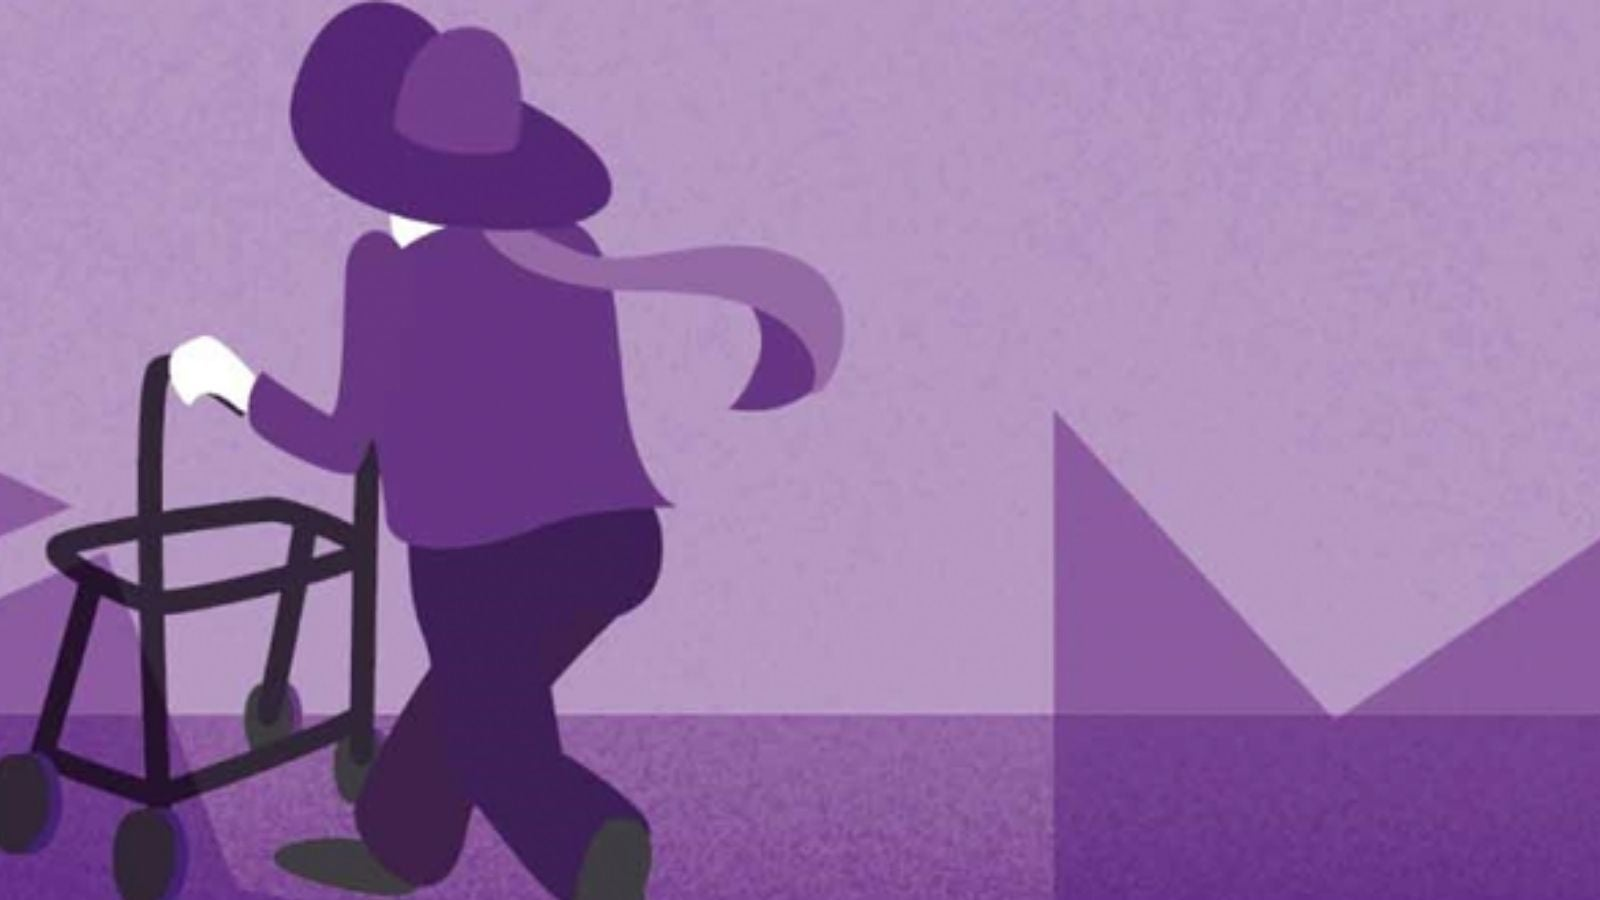 Purple illustration of woman walking with zimmer frame